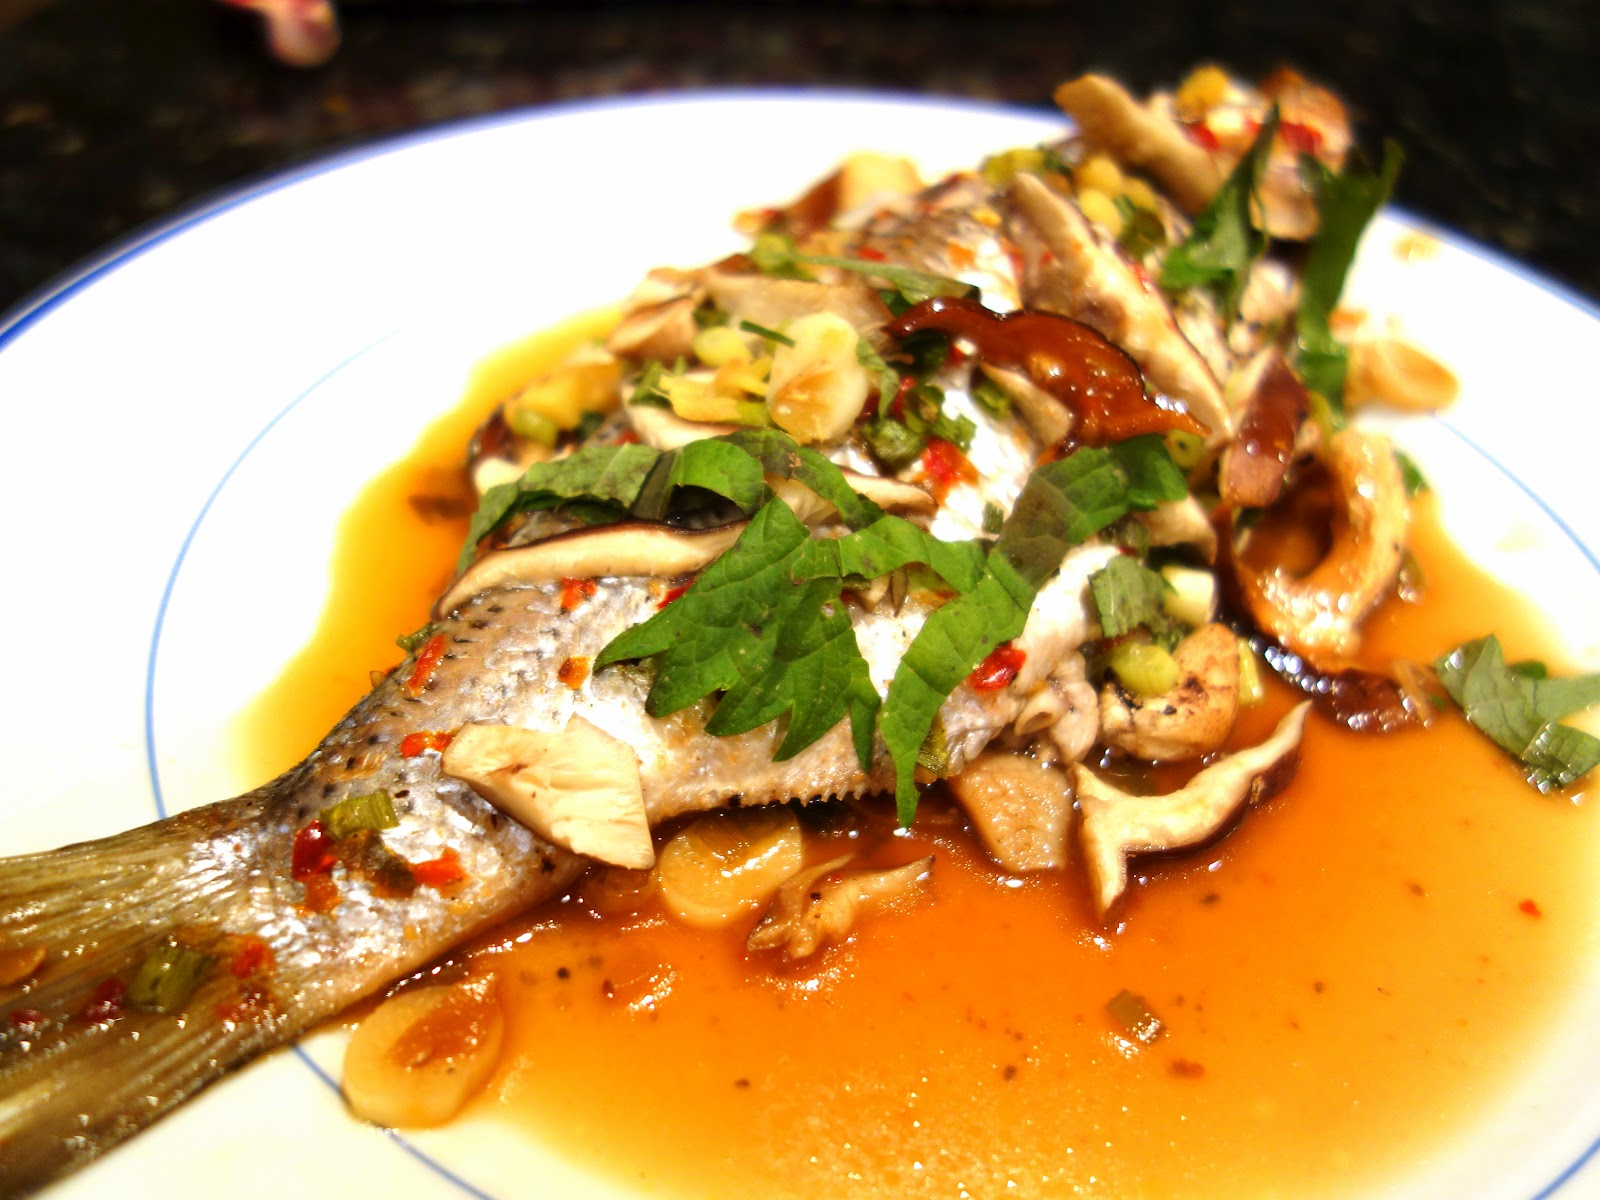 Local and Best: Asian-Style Steamed Fish with Ginger and Scallions